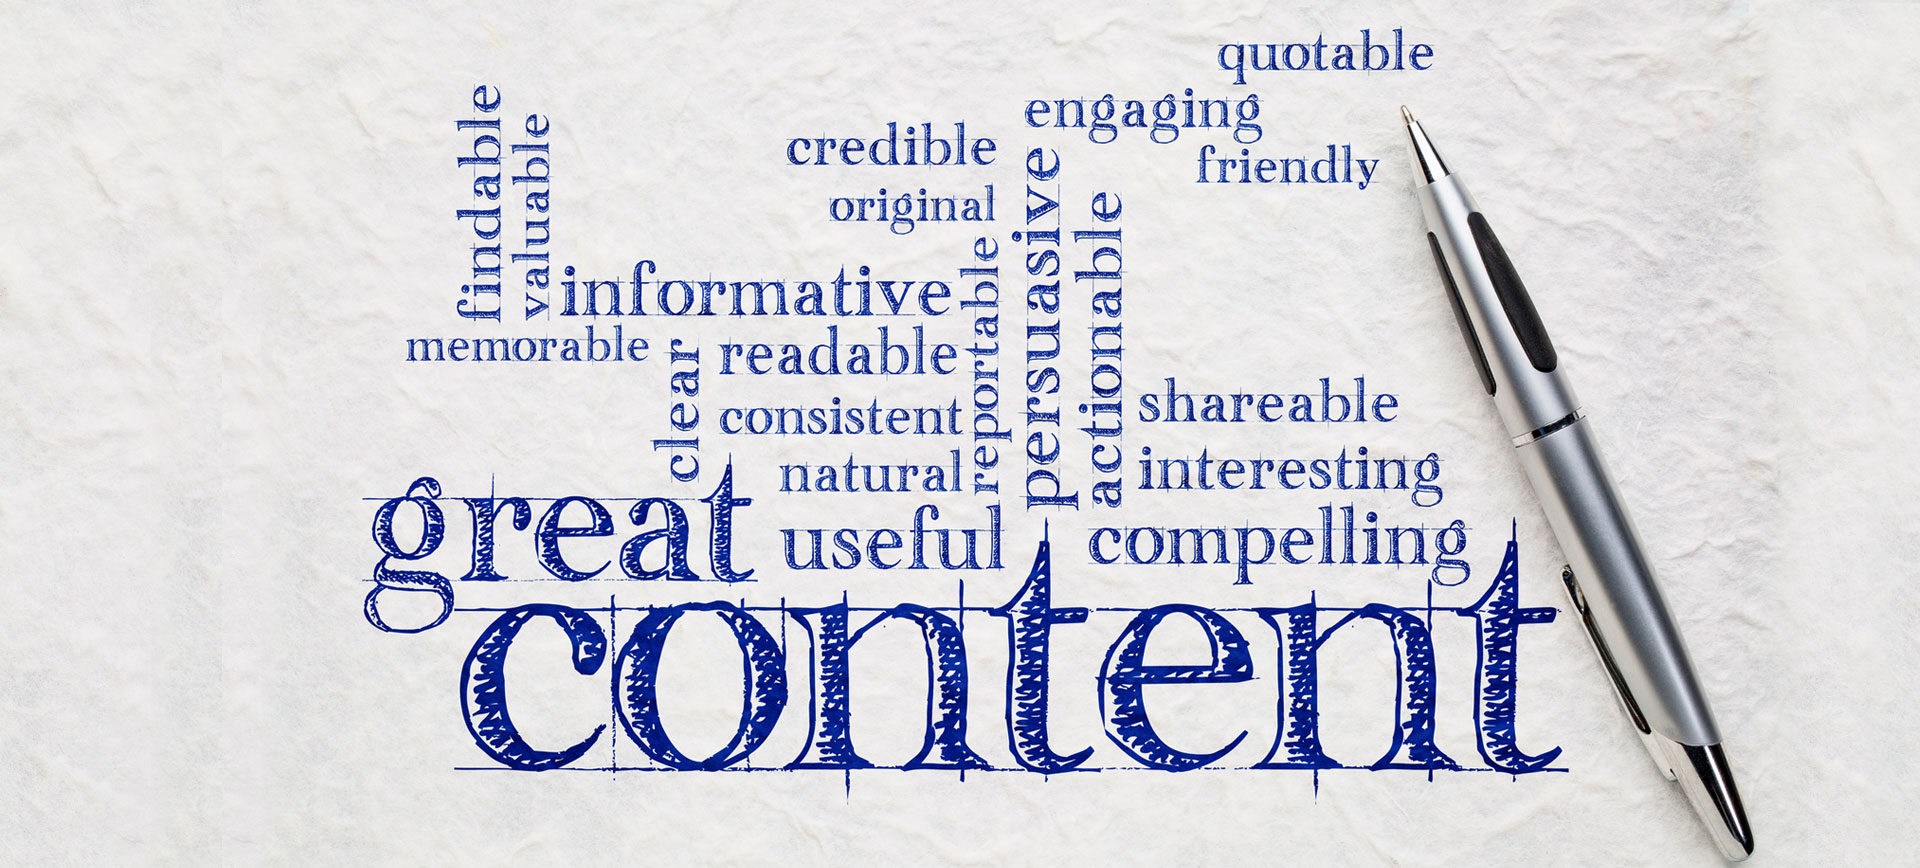 Looking to use related content for better conversion?